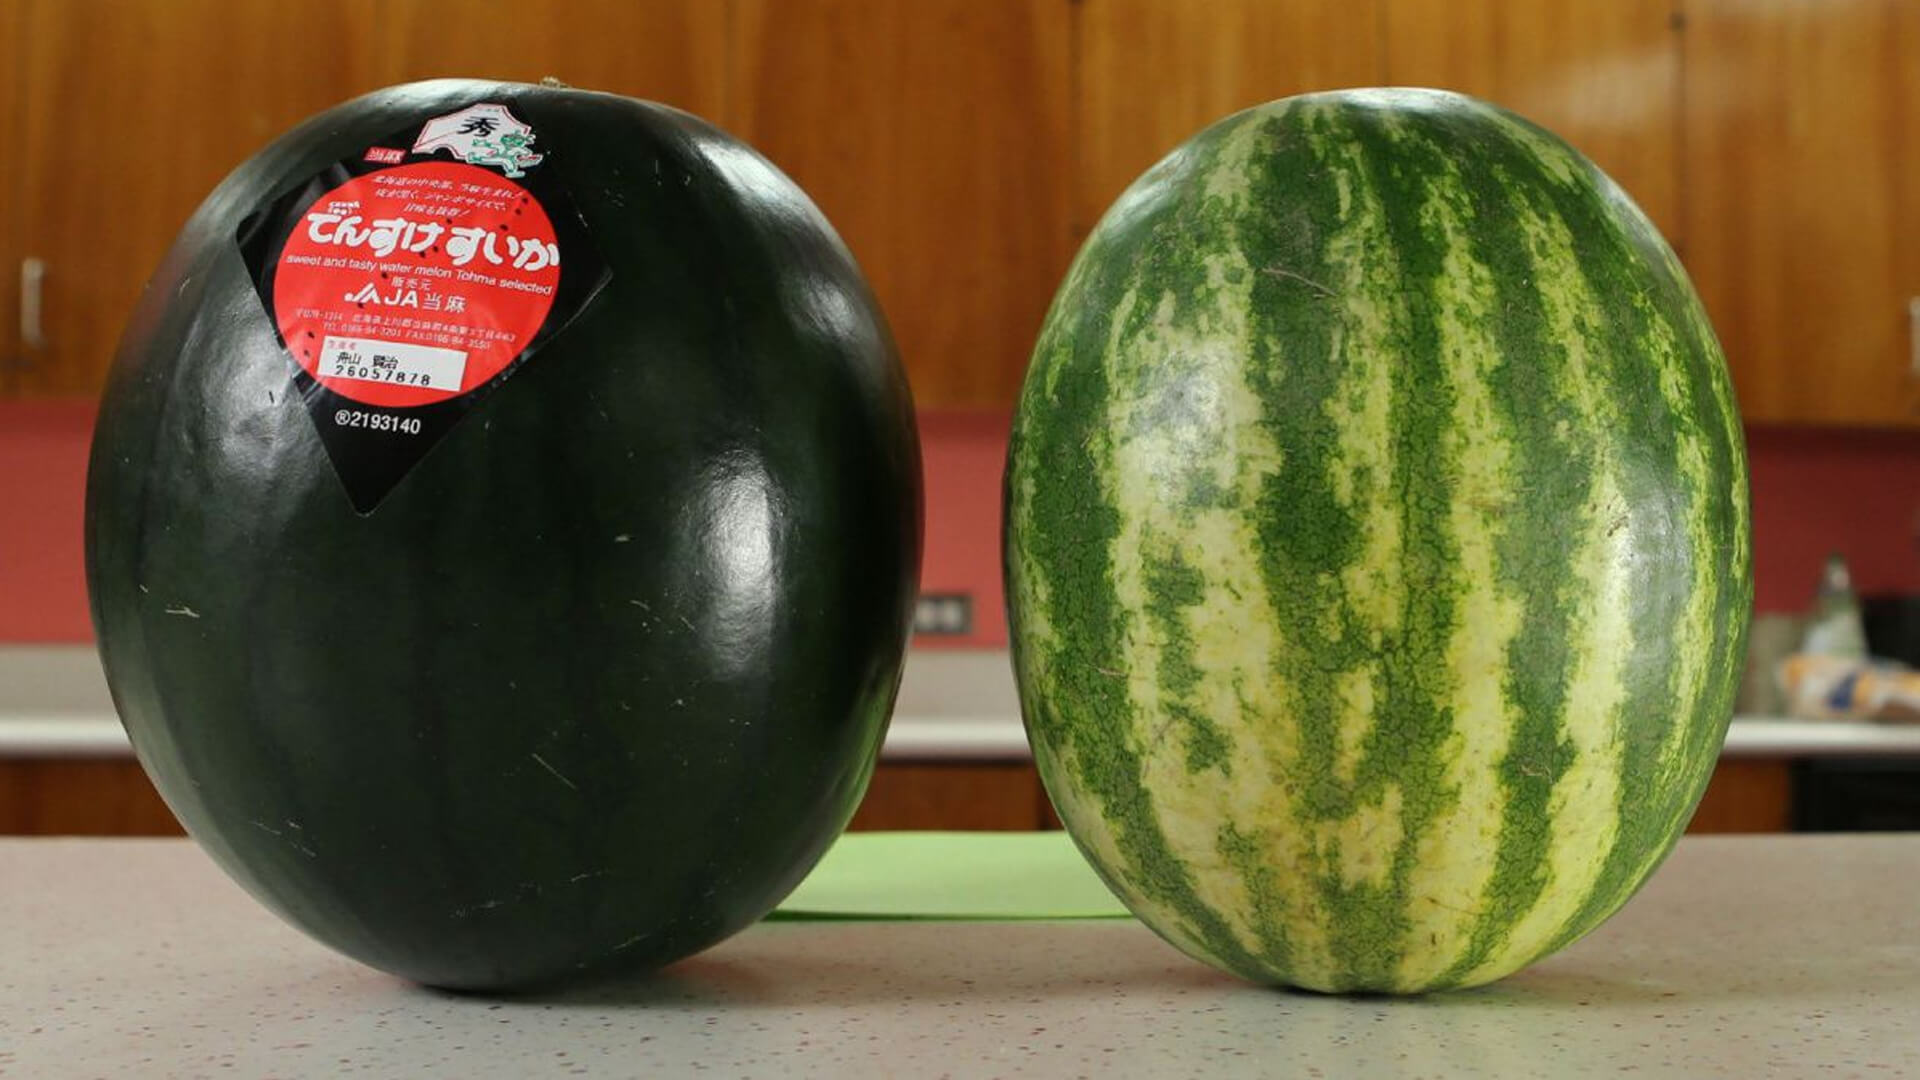 Black Densuke Watermelon